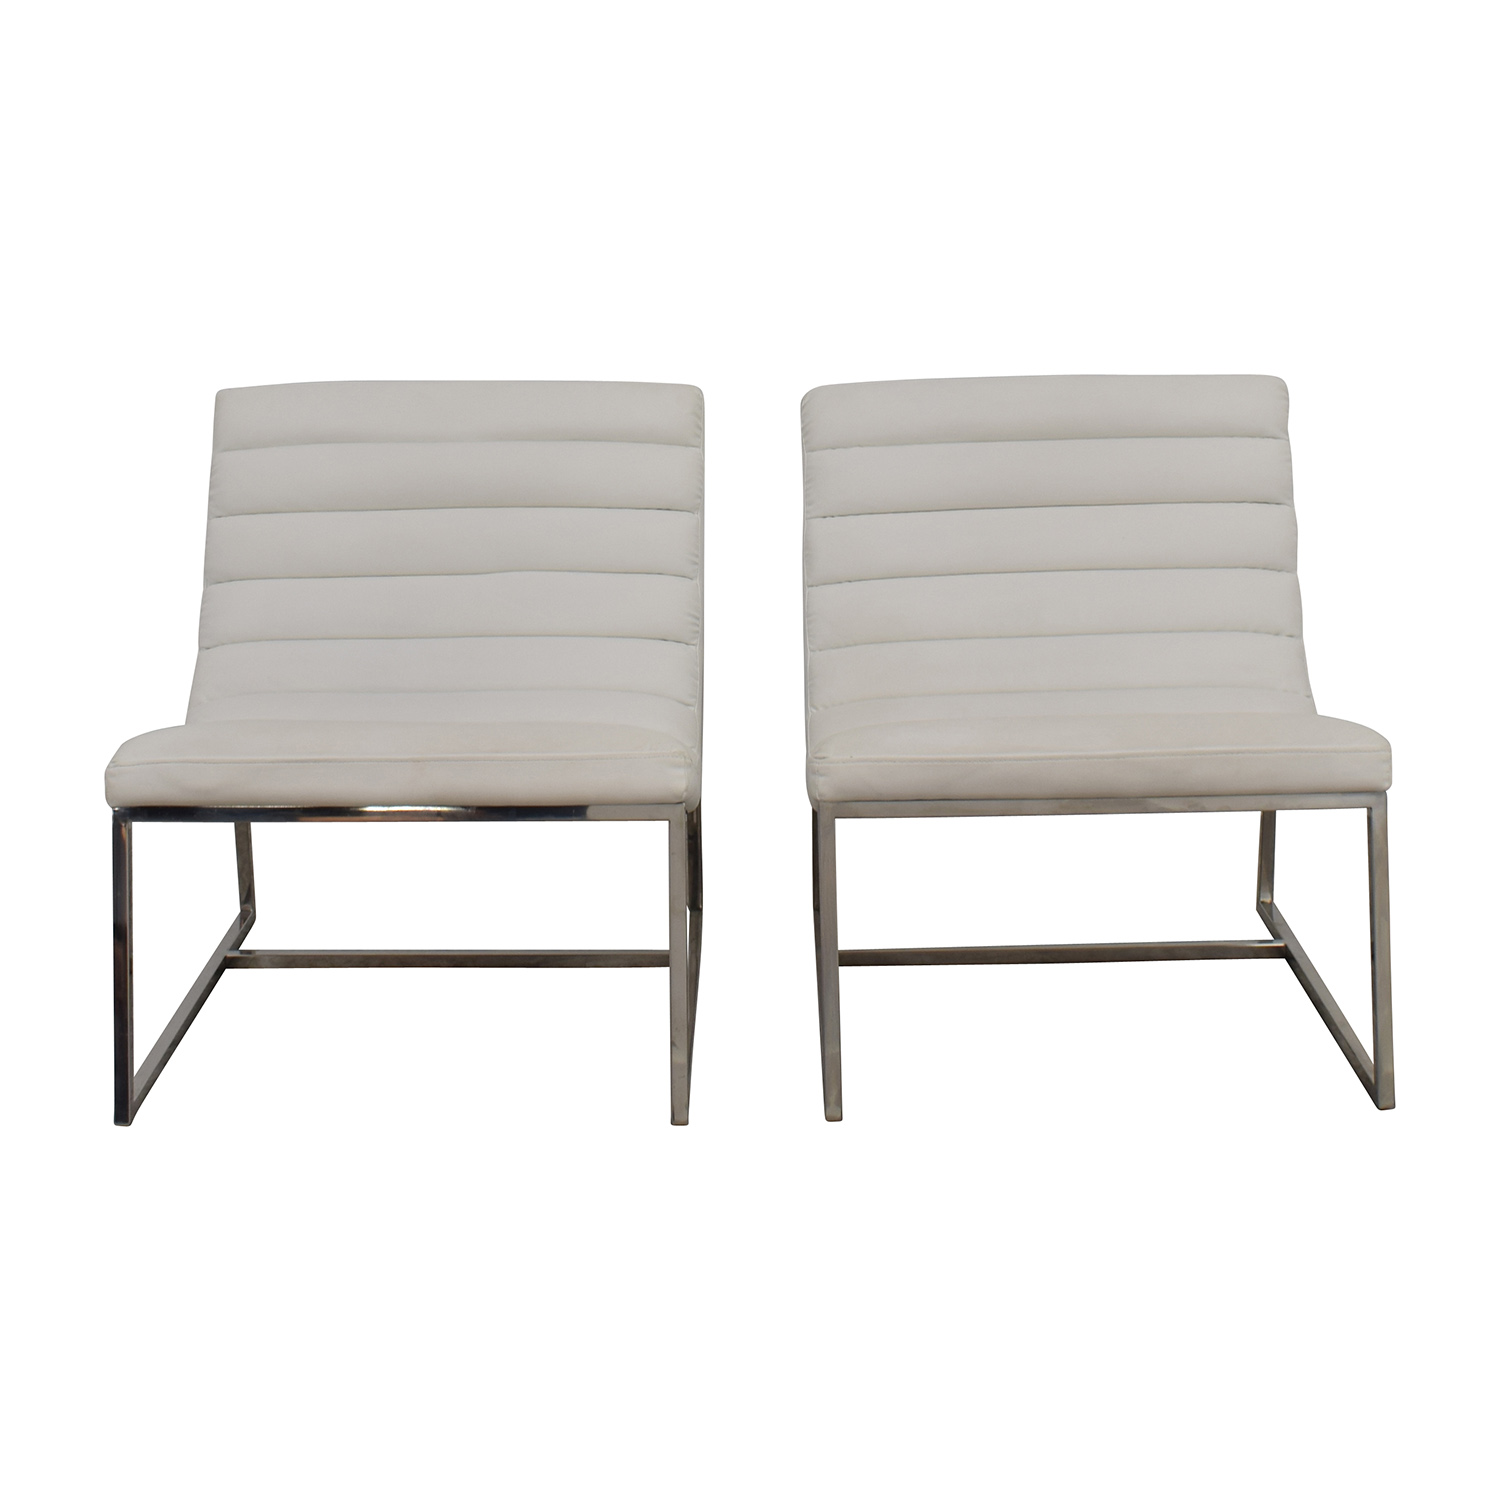 43% OFF White Leather Sofa Chairs Chairs